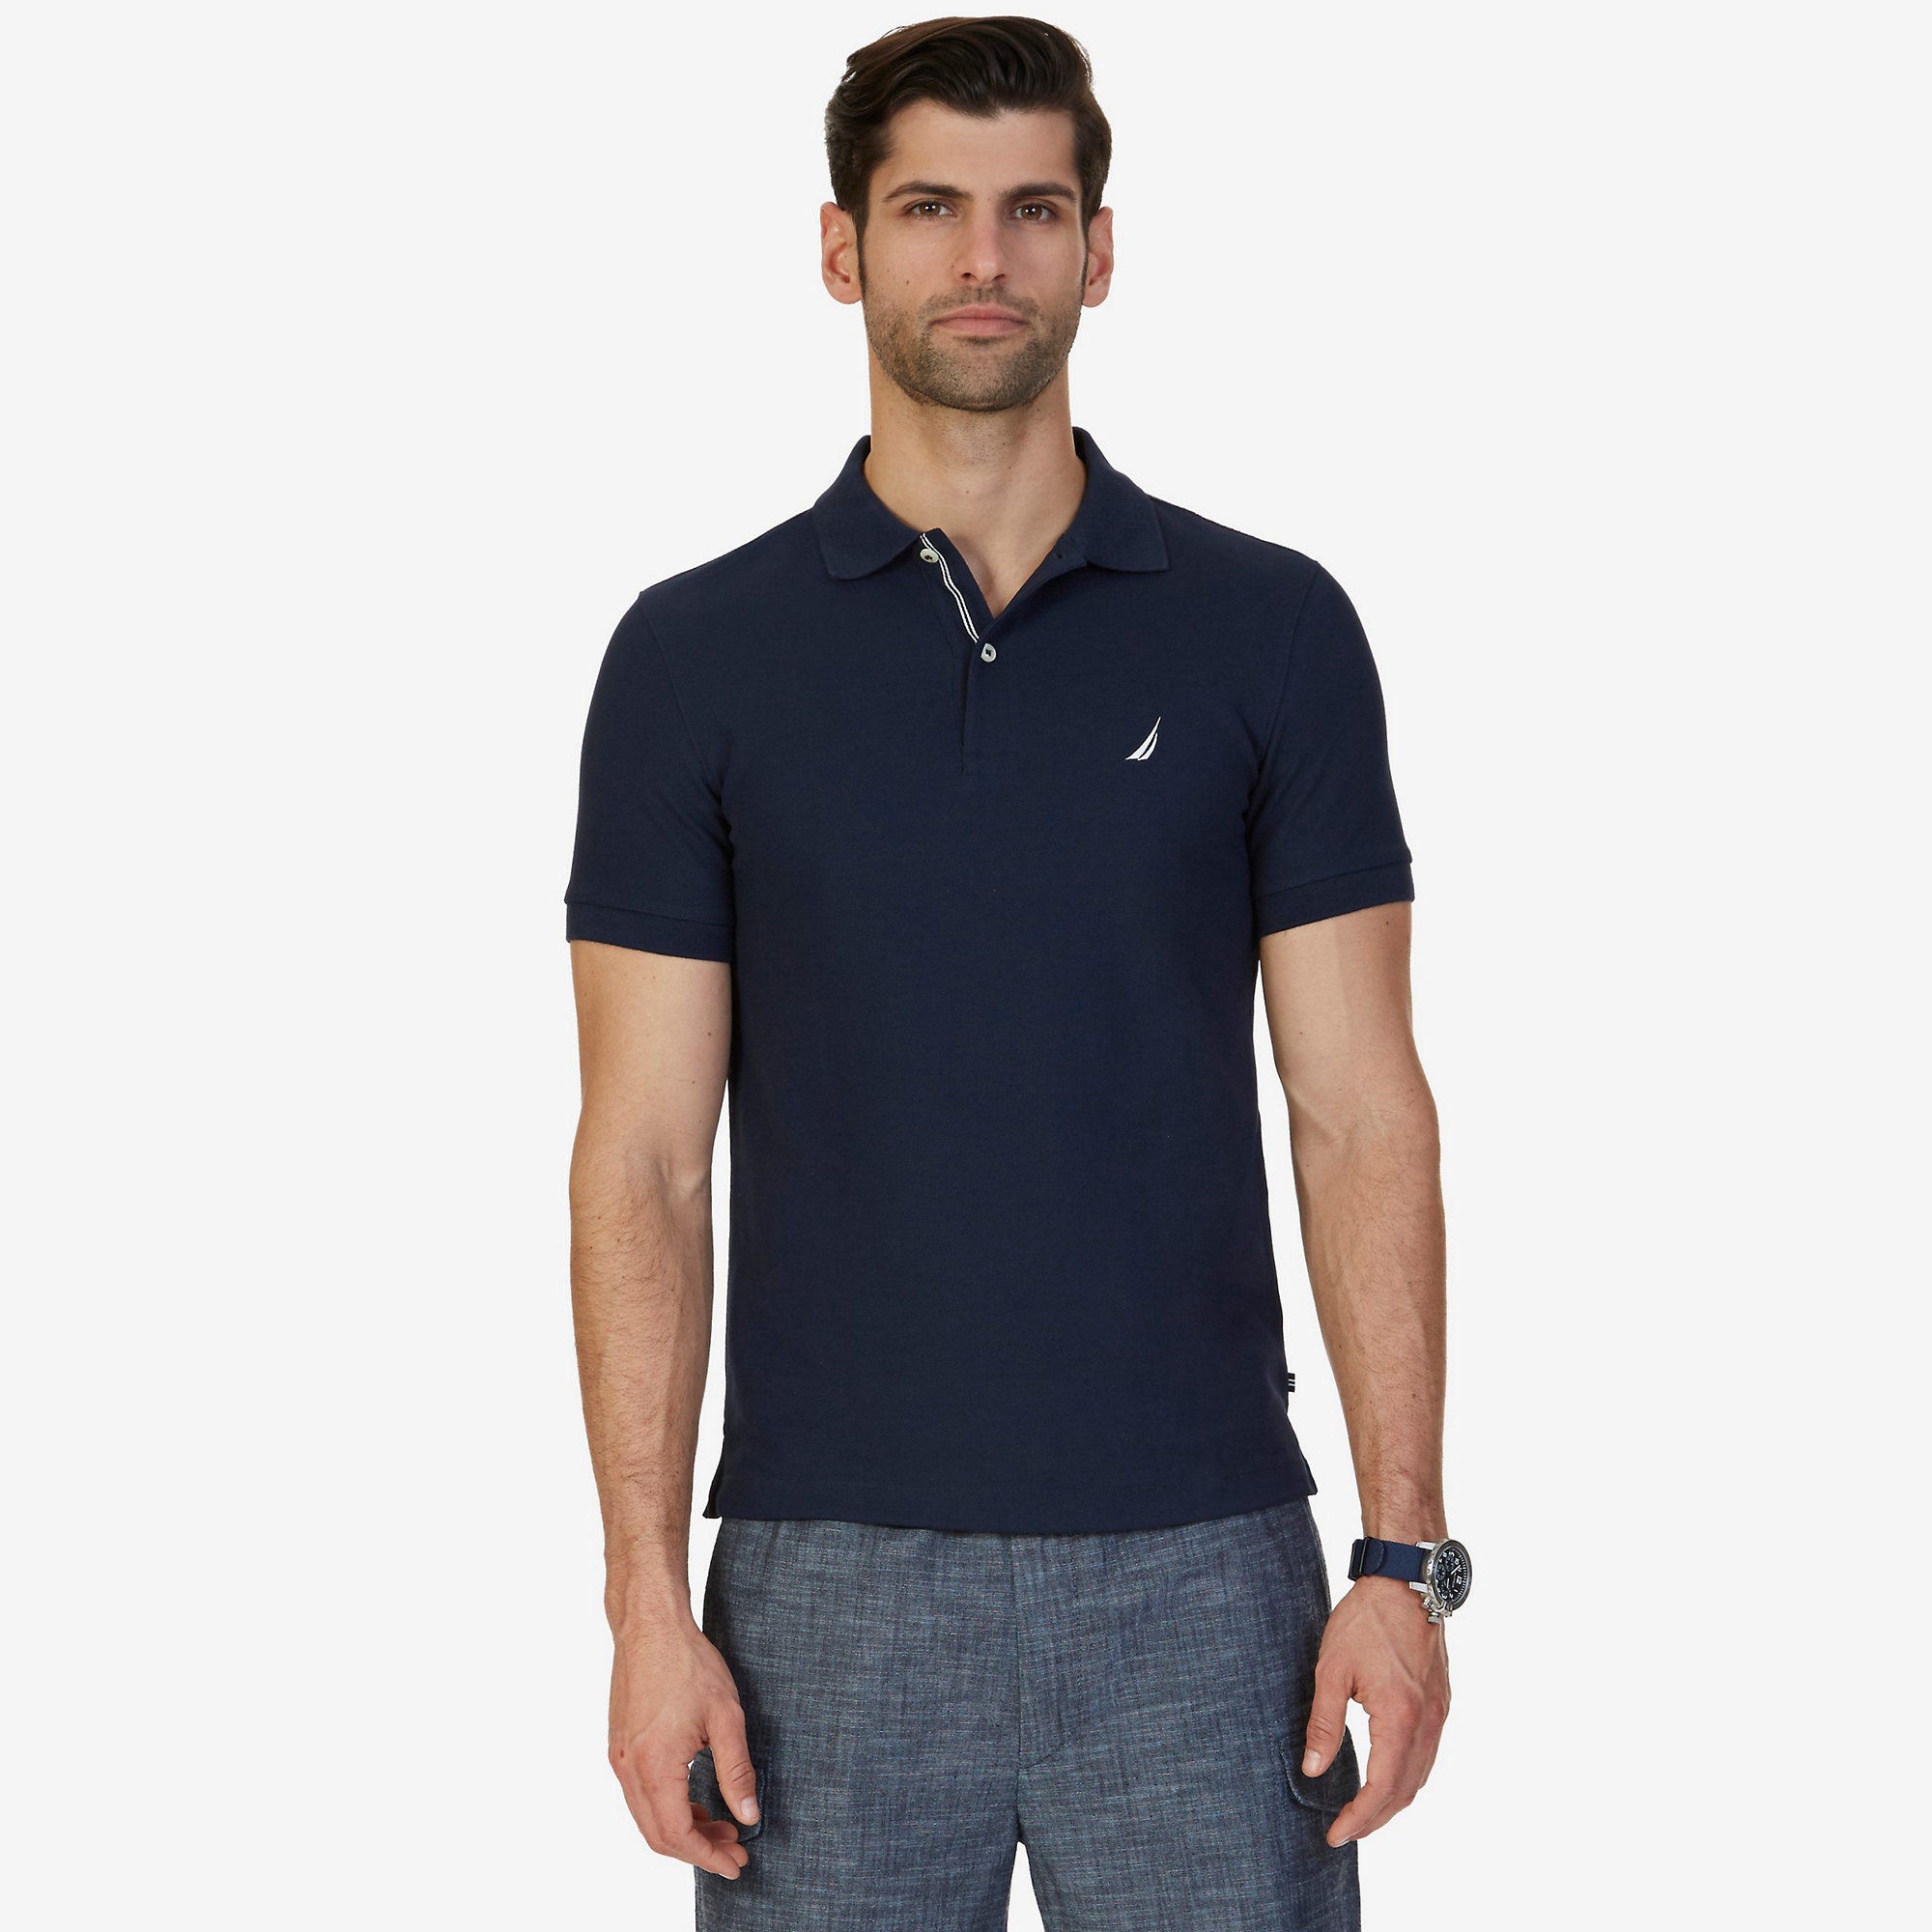 China Custom Slim Fit Mens Polo Shirts With Your Own Designs Photos